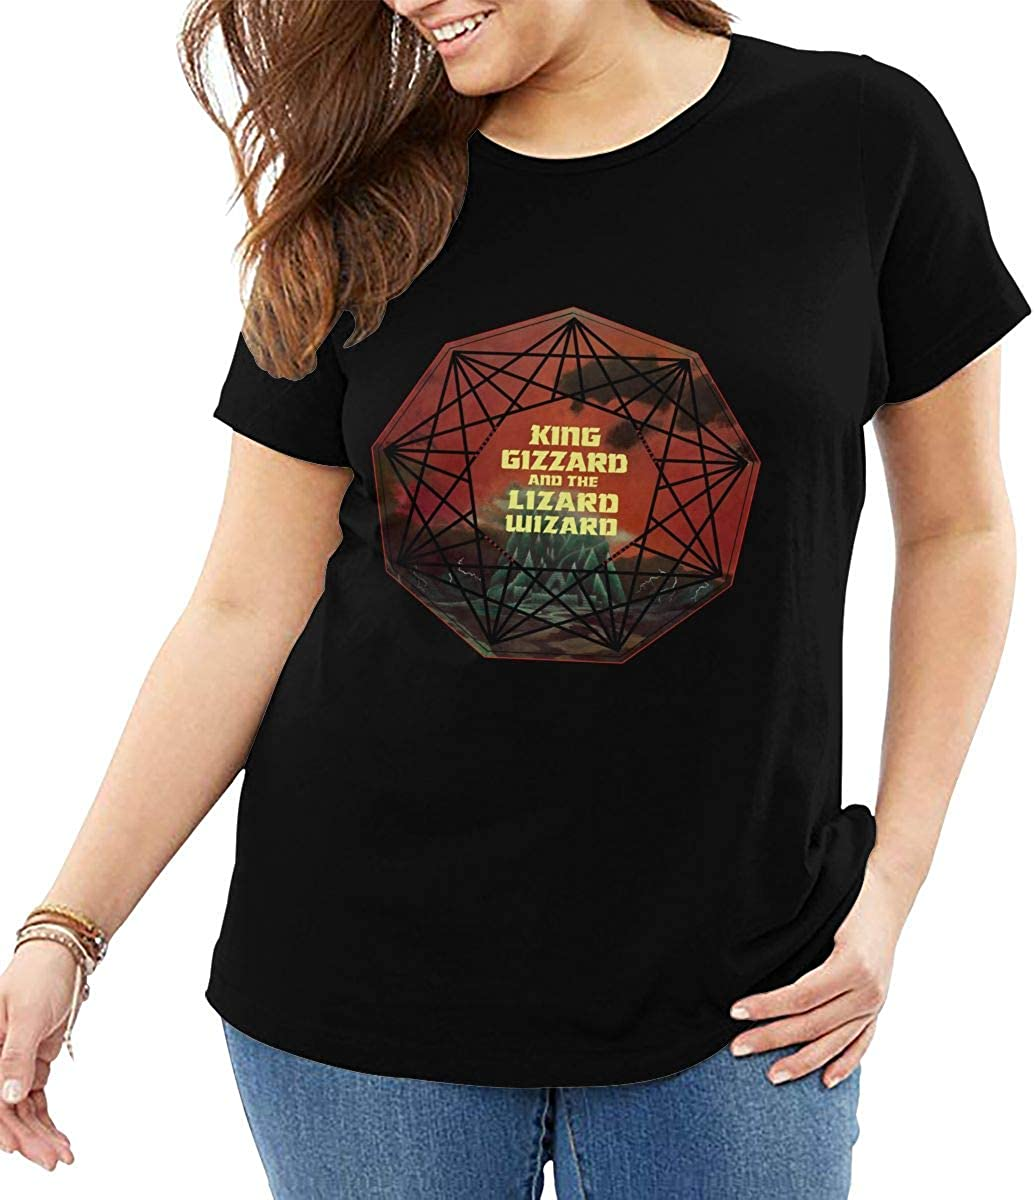 King/Gizzard/and/Lizard/Wizard Womens Fashion Trend Slim Fit Comfortable Round Neck Short Sleeve T-Shirt